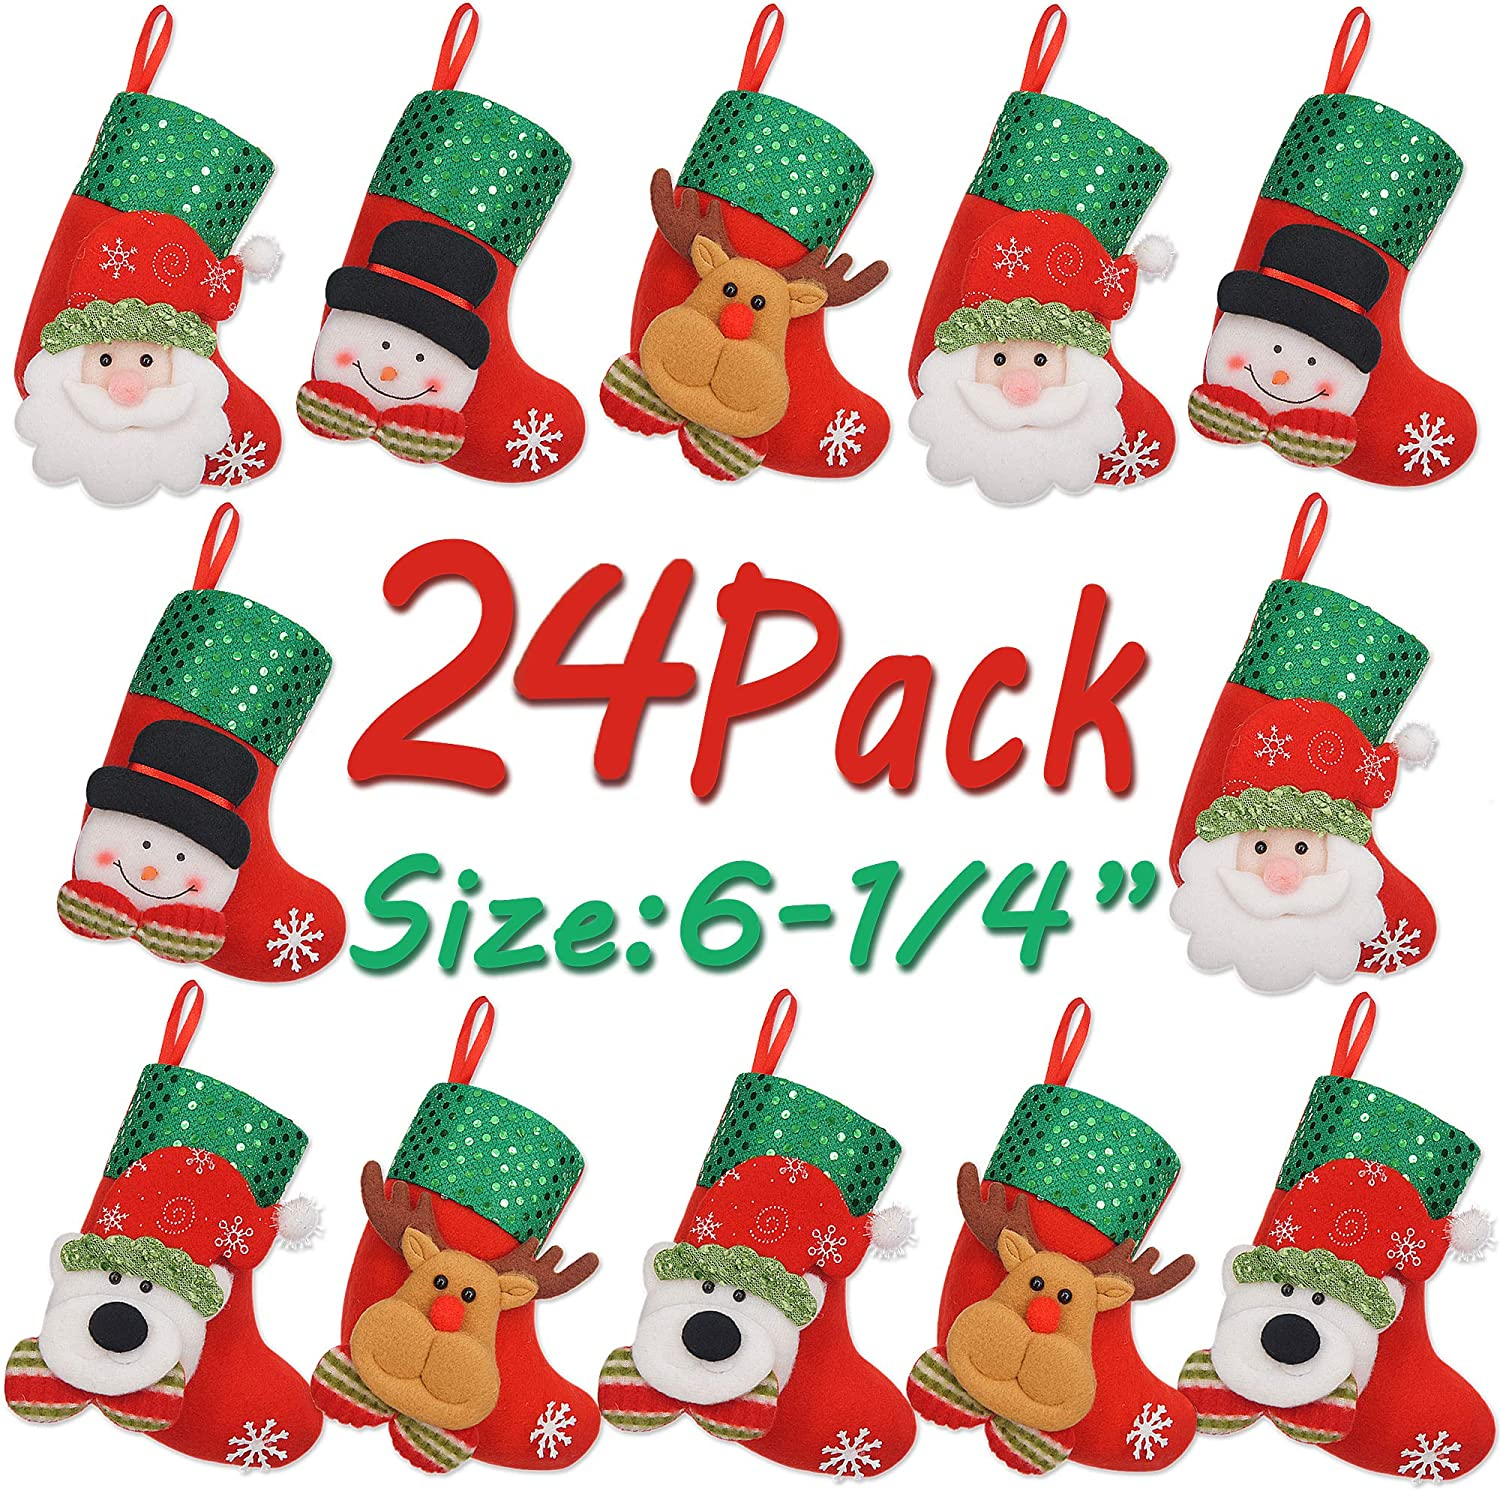 LimBridge Christmas Mini Stockings, 24 Pack 6.25 inches 3D Sequin Gift Card Bags Holders, Bulk Treats for Neighbors Coworkers Kids Cats Dogs, Small Rustic Felt Xmas Tree Decorations Set